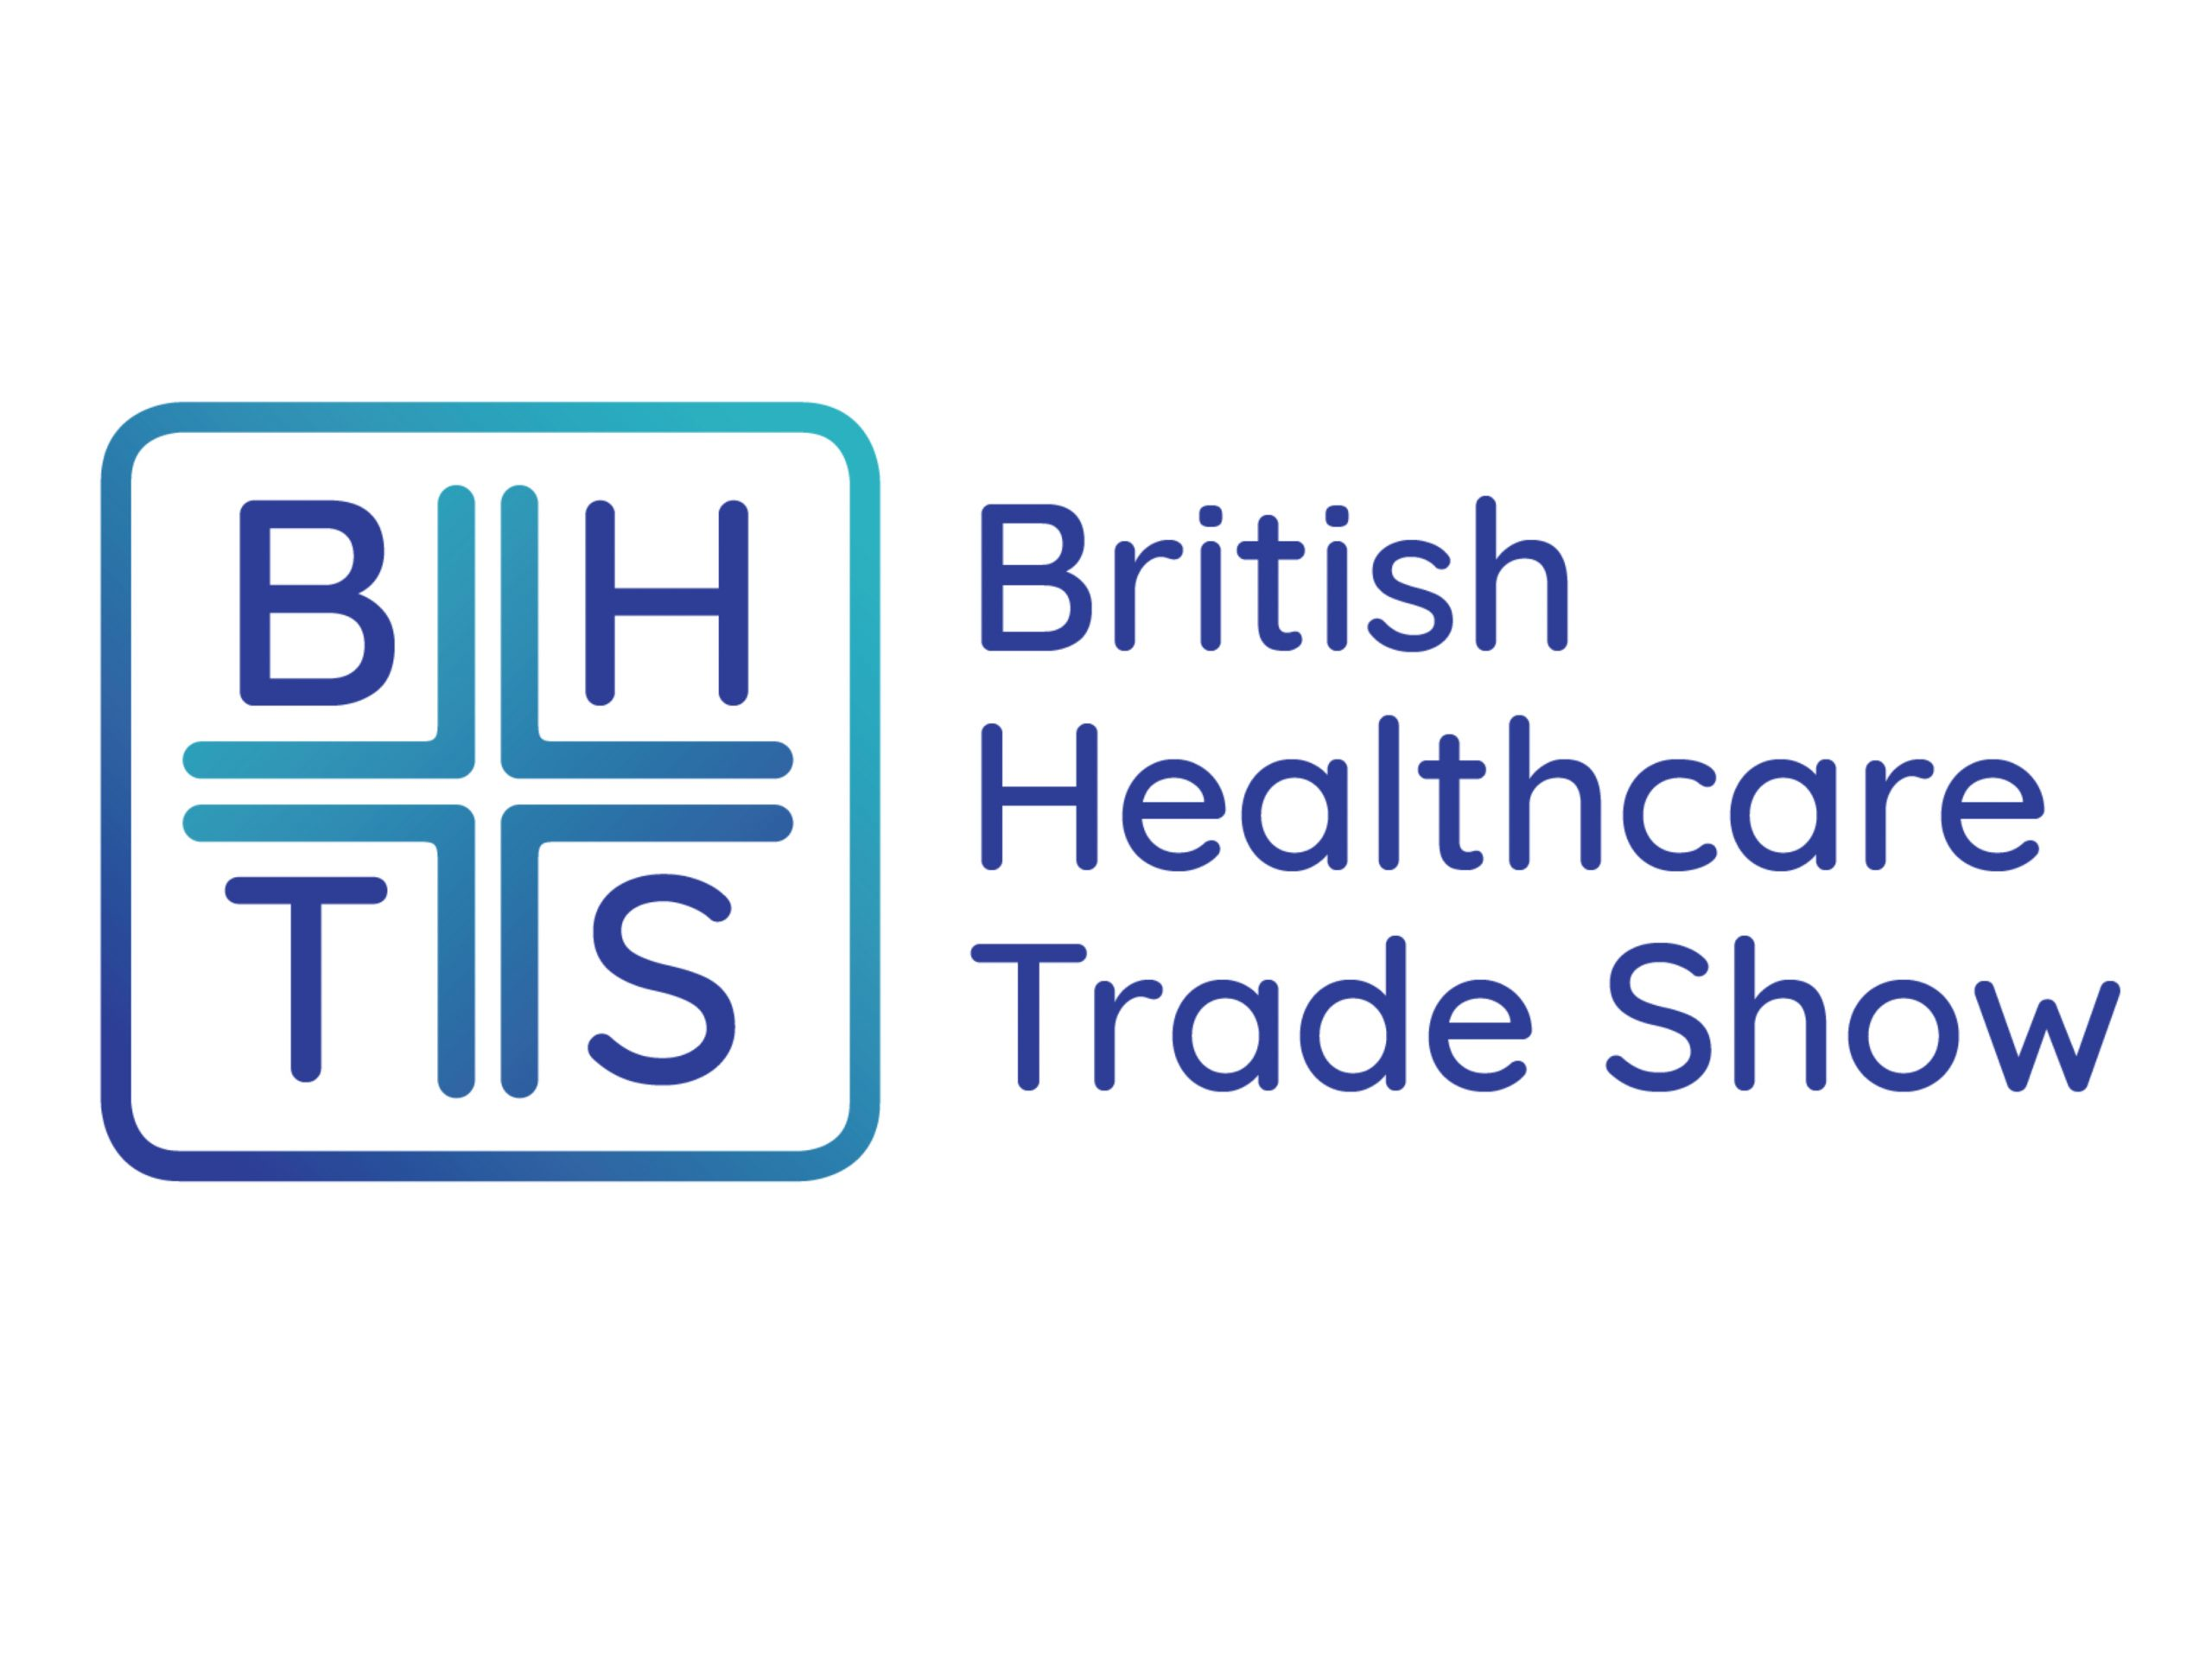 British Healthcare Trade Show Maintains Commitment to bringing Industry Together with new date